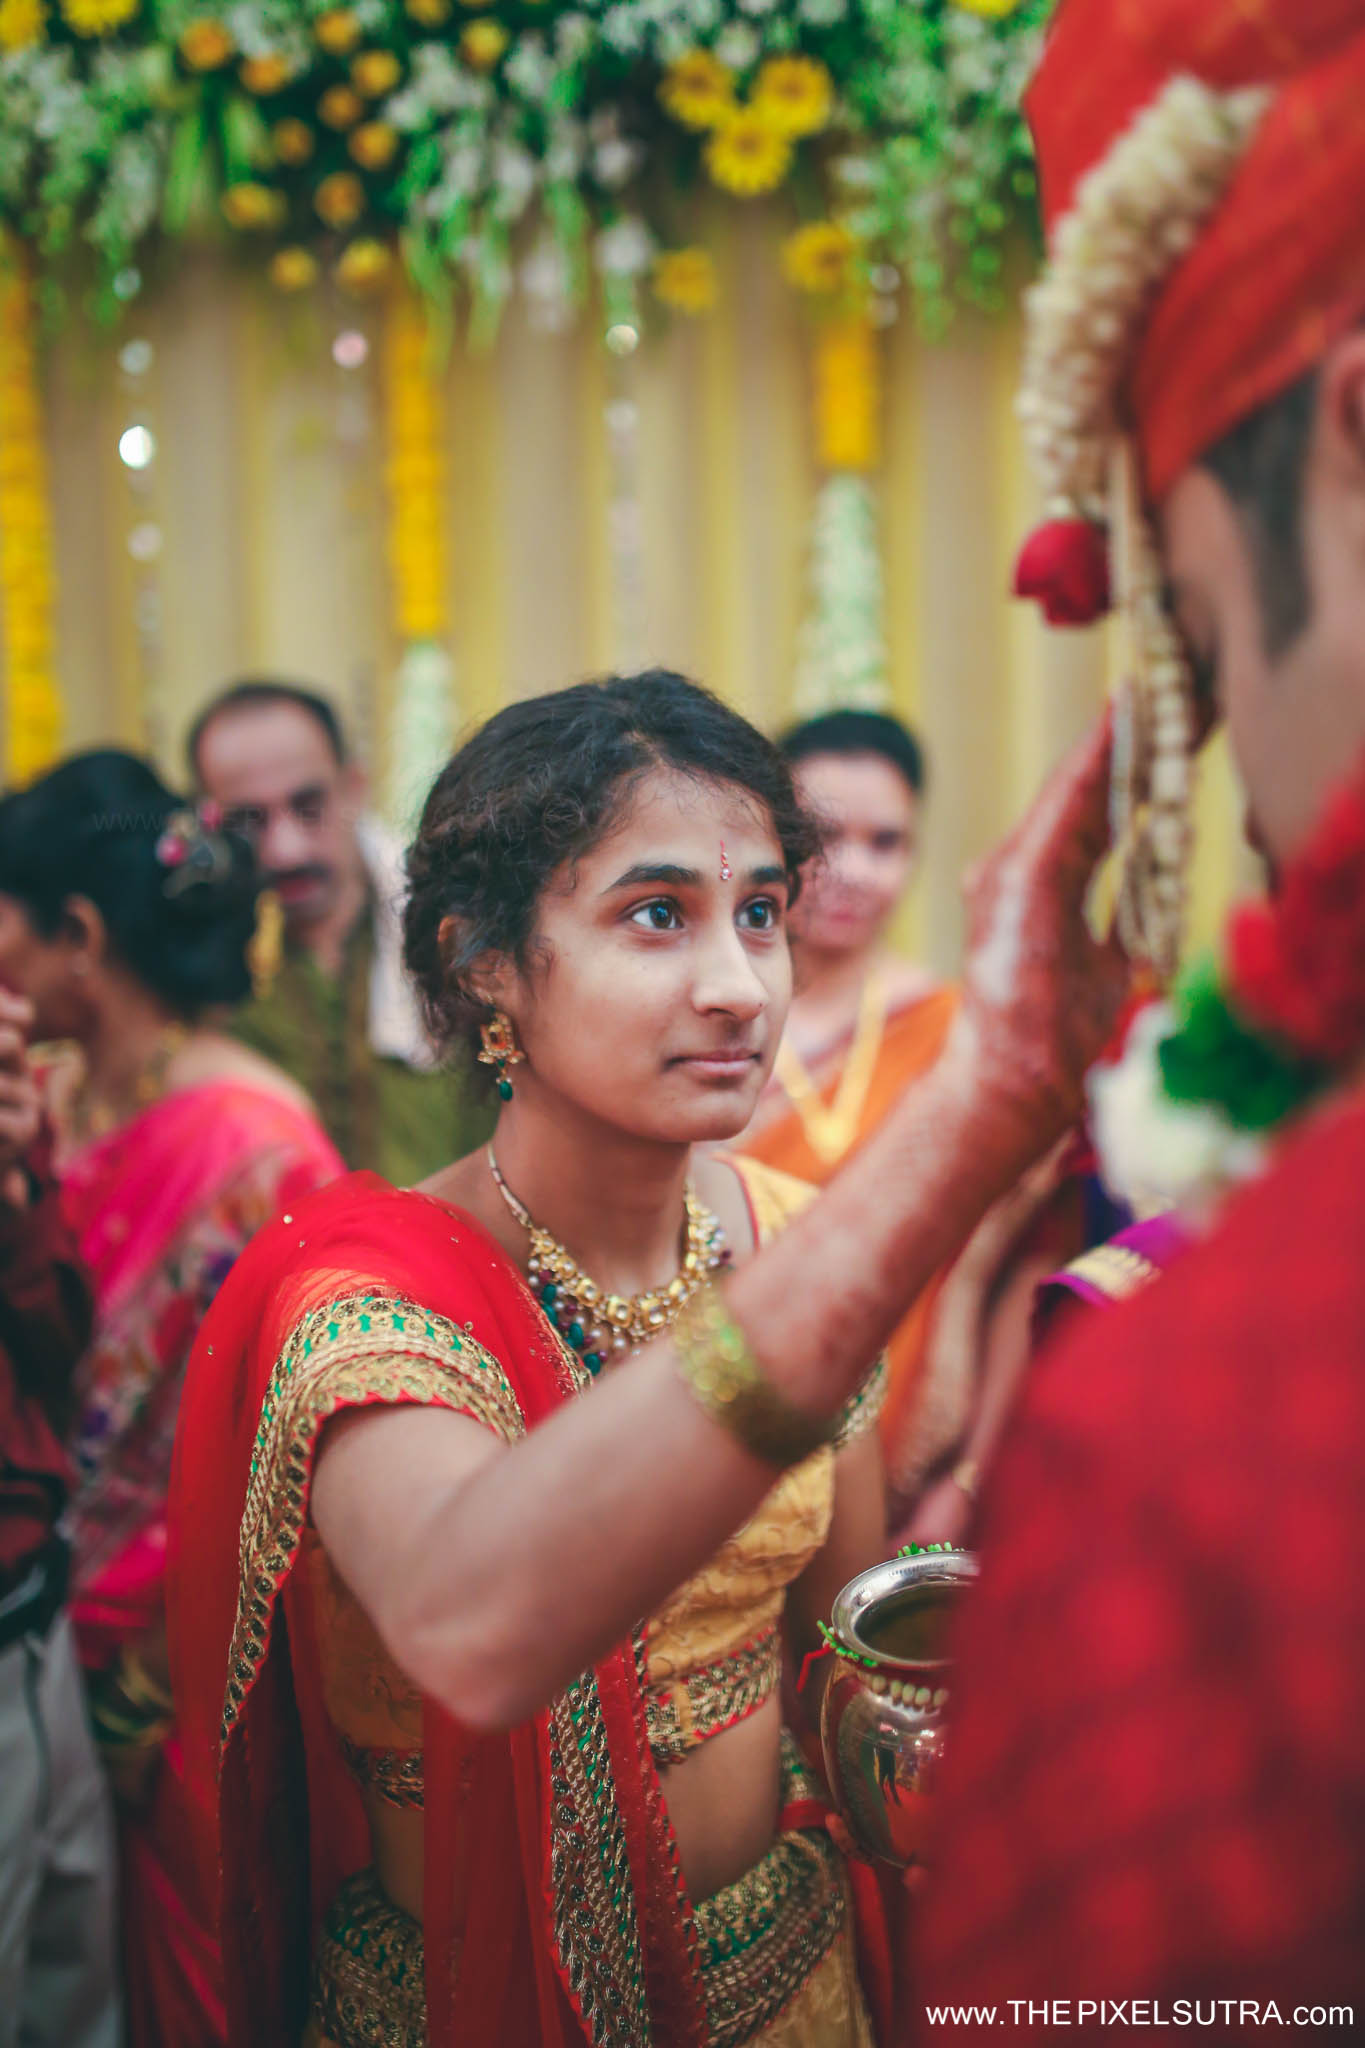 The Pixel Sutra Nachiket x Priyanka Candid Wedding photographer Mumbai Best  (48).jpg